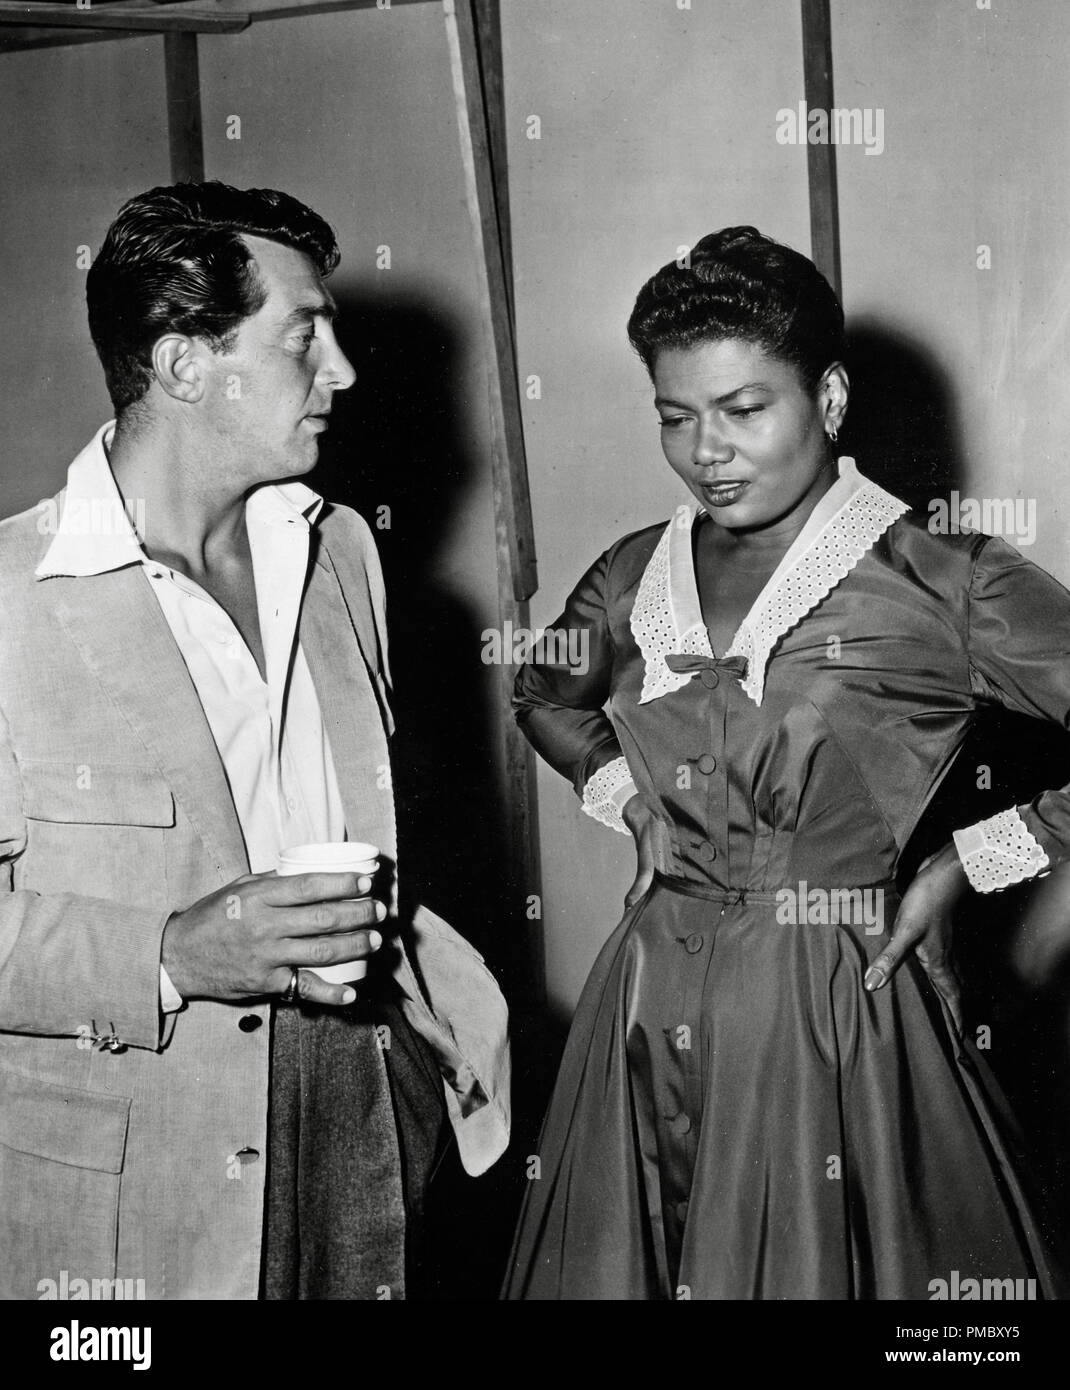 Pearl Bailey High Resolution Stock Photography and Images - Alamy